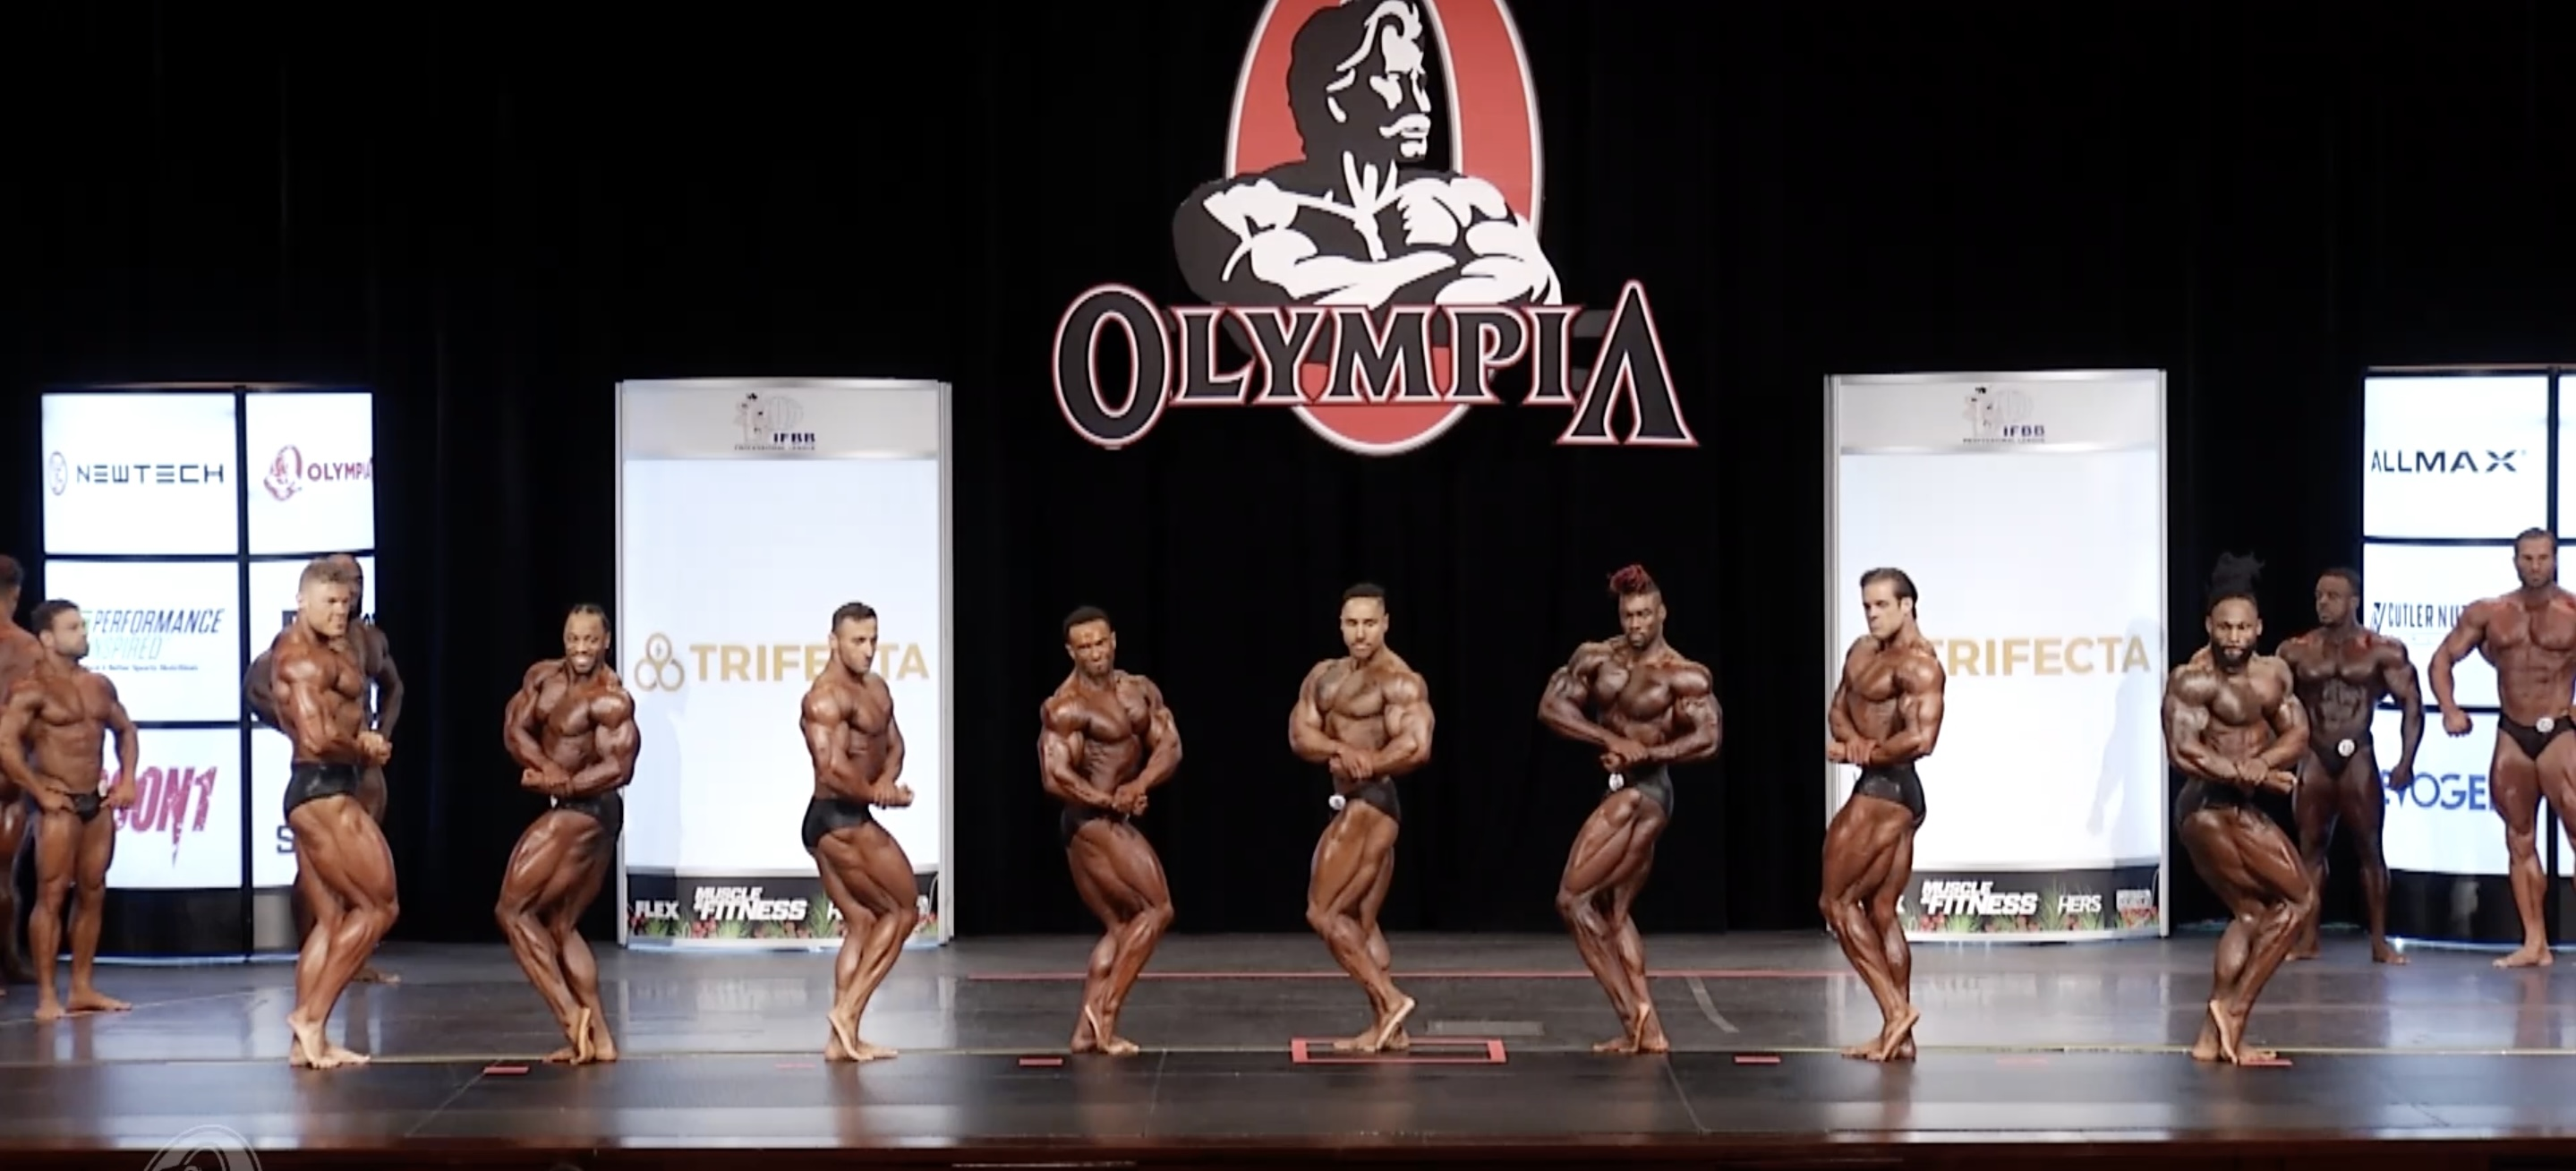 Olympia 2020 Classic Physique 2nd callout